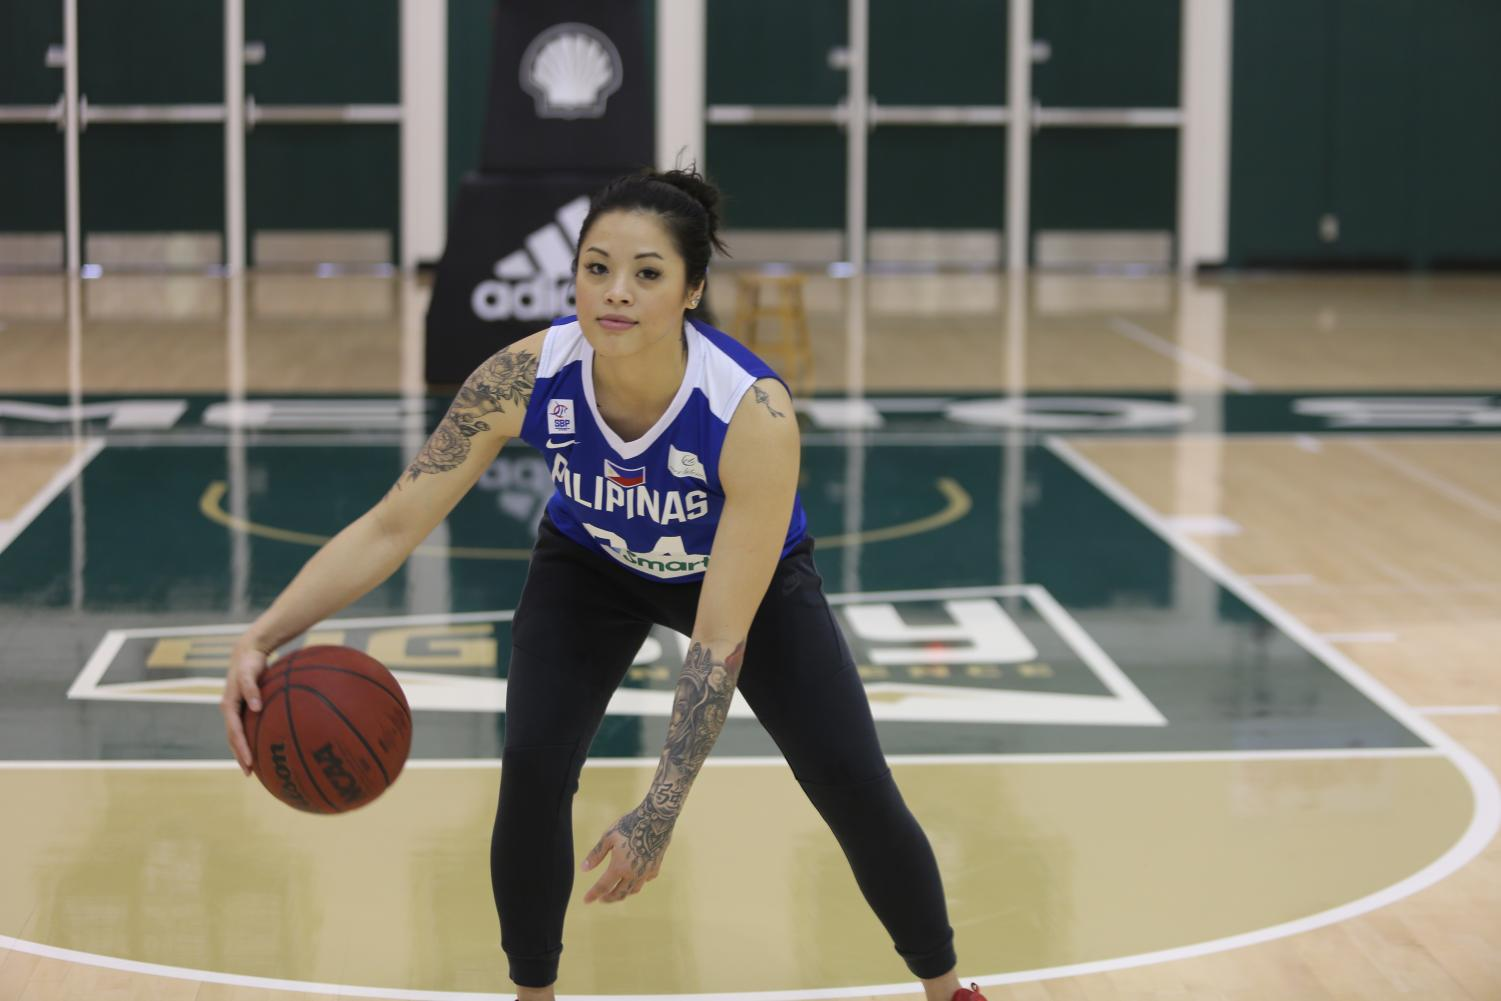 Sac State senior guard Gabi Bade crosses over while wearing her Philippines national team jersey on Monday, Jan. 26 at the Nest. Bade is one of three seniors on the Hornets' young roster.